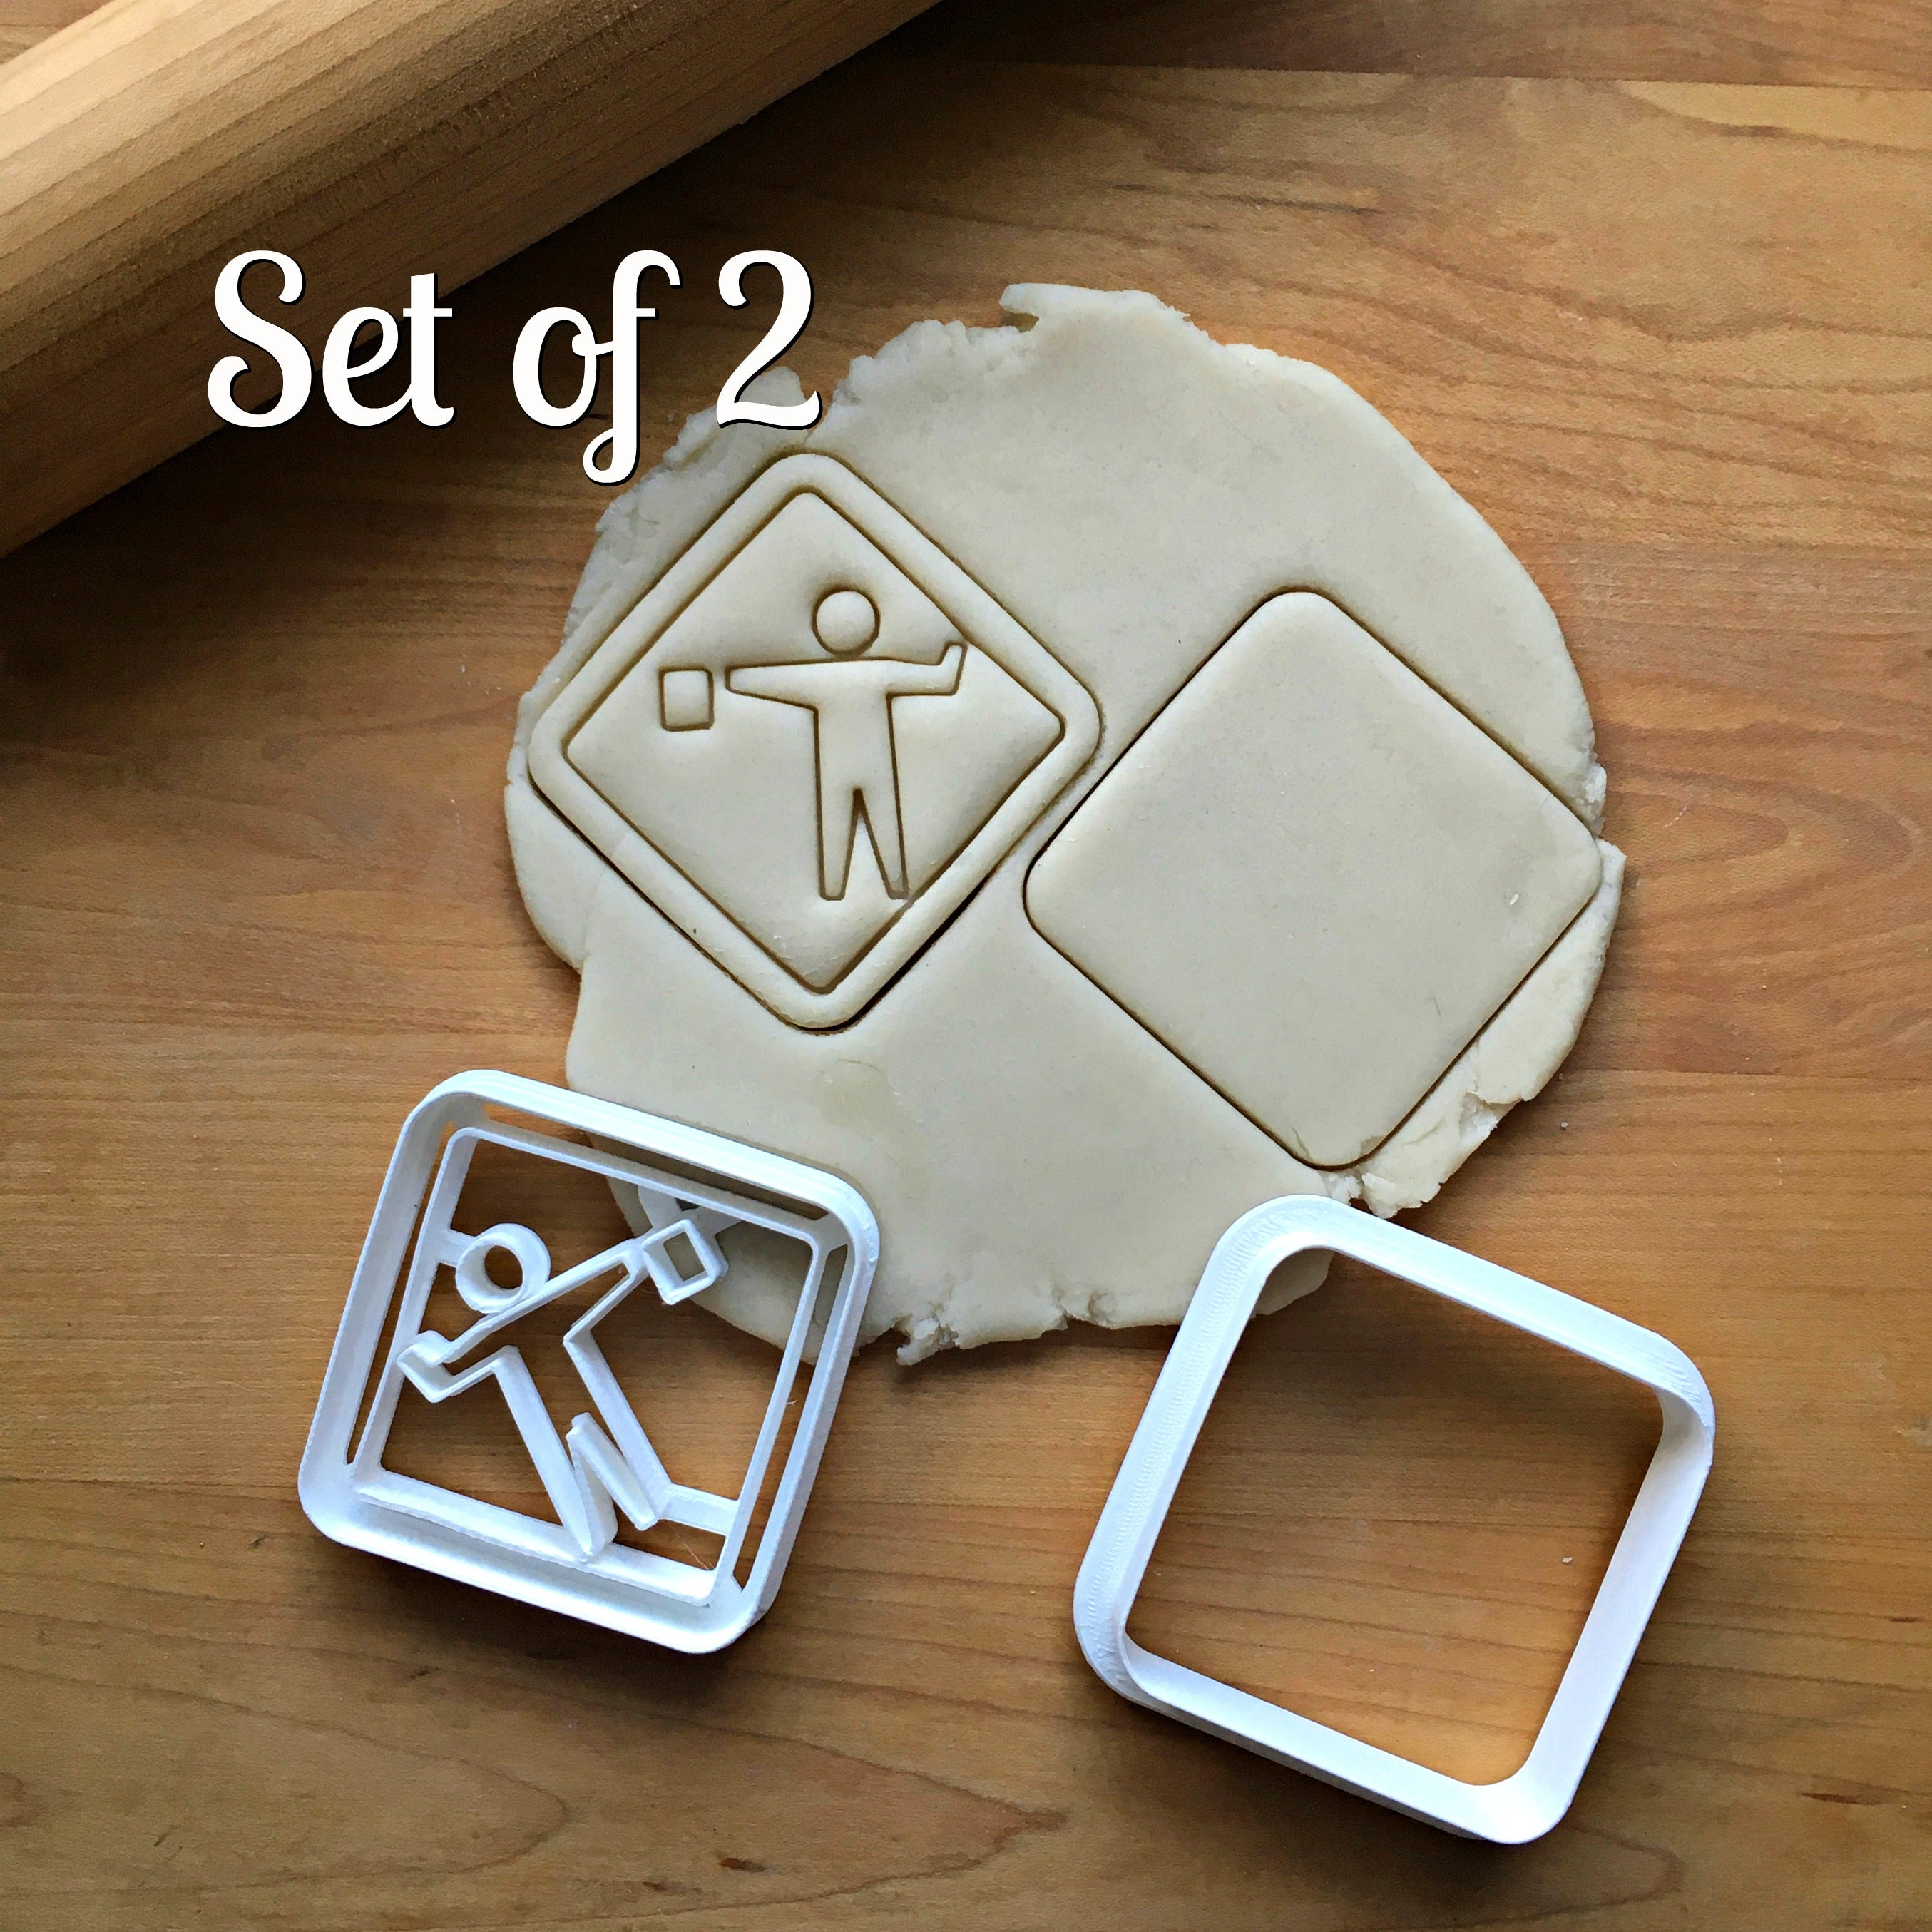 Set of 2 Construction Sign Cookie Cutter/sDishwasher Safe